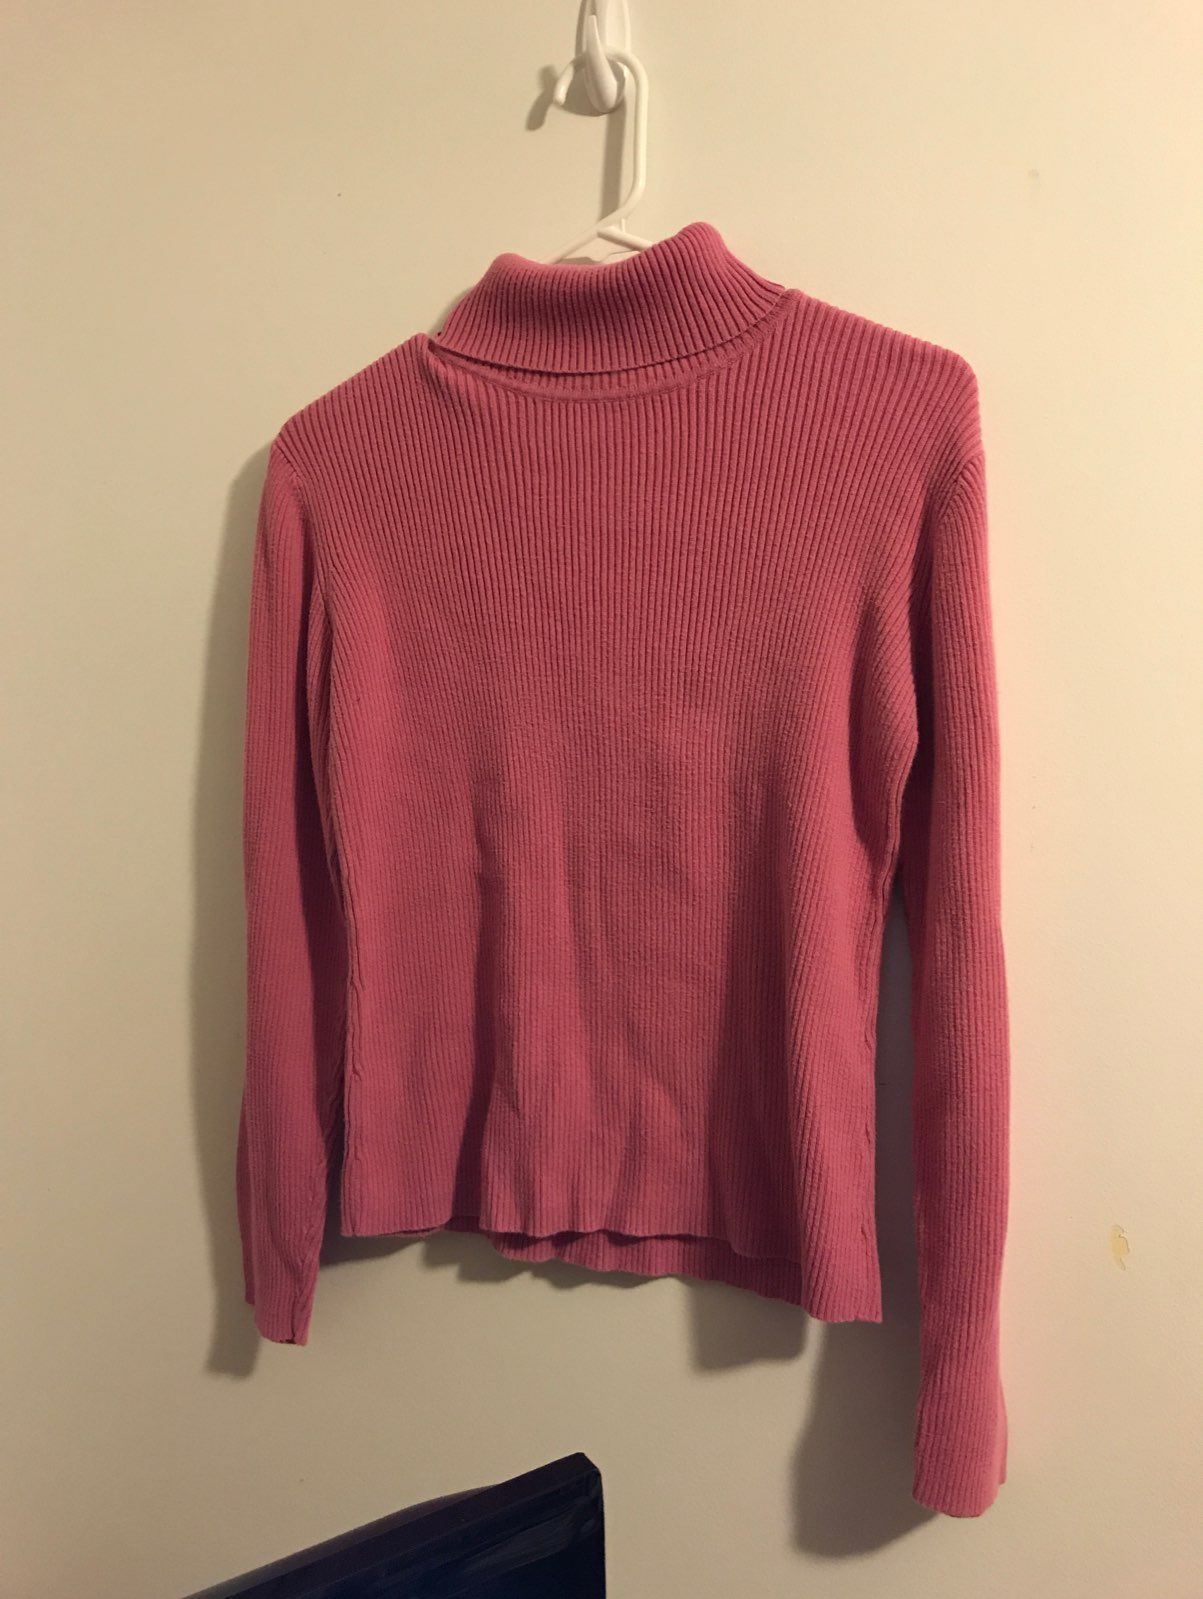 Pink Ribbed Turtleneck Sweater - Medium - Mercari: BUY & SELL ...